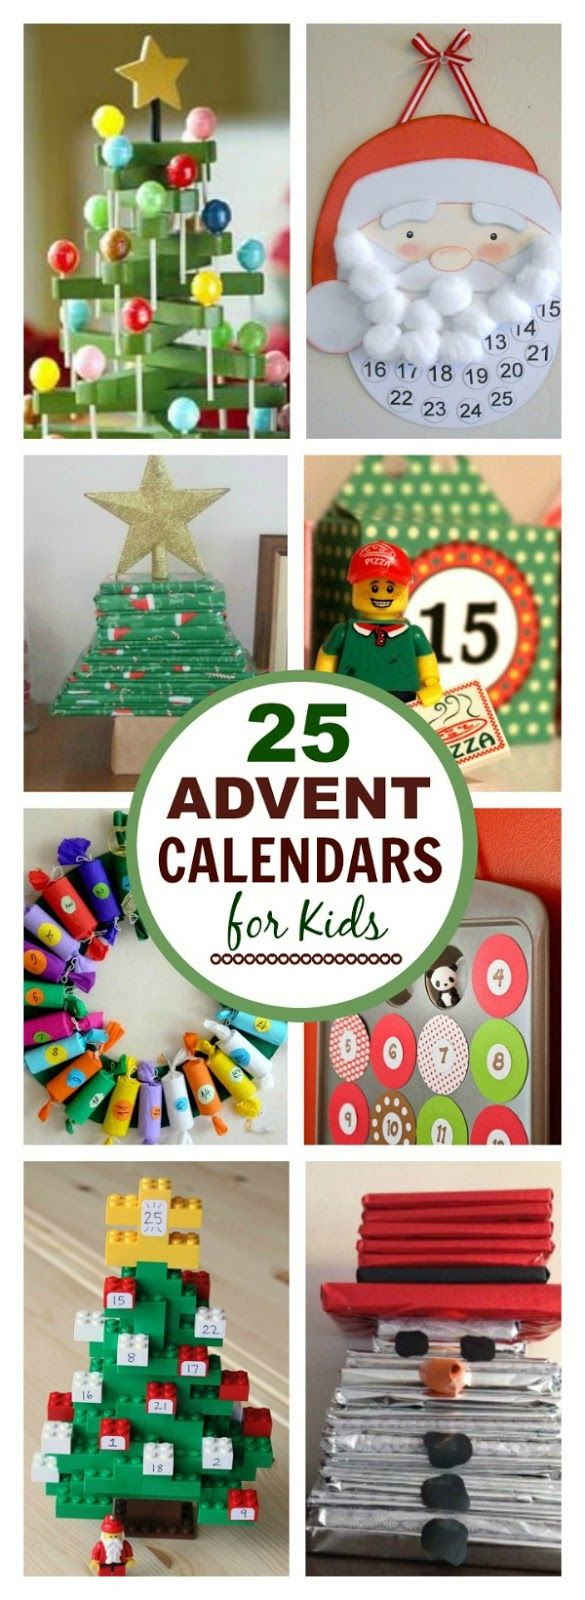 Diy Kins Advent Calendar : Ideas about homemade advent calendars on pinterest